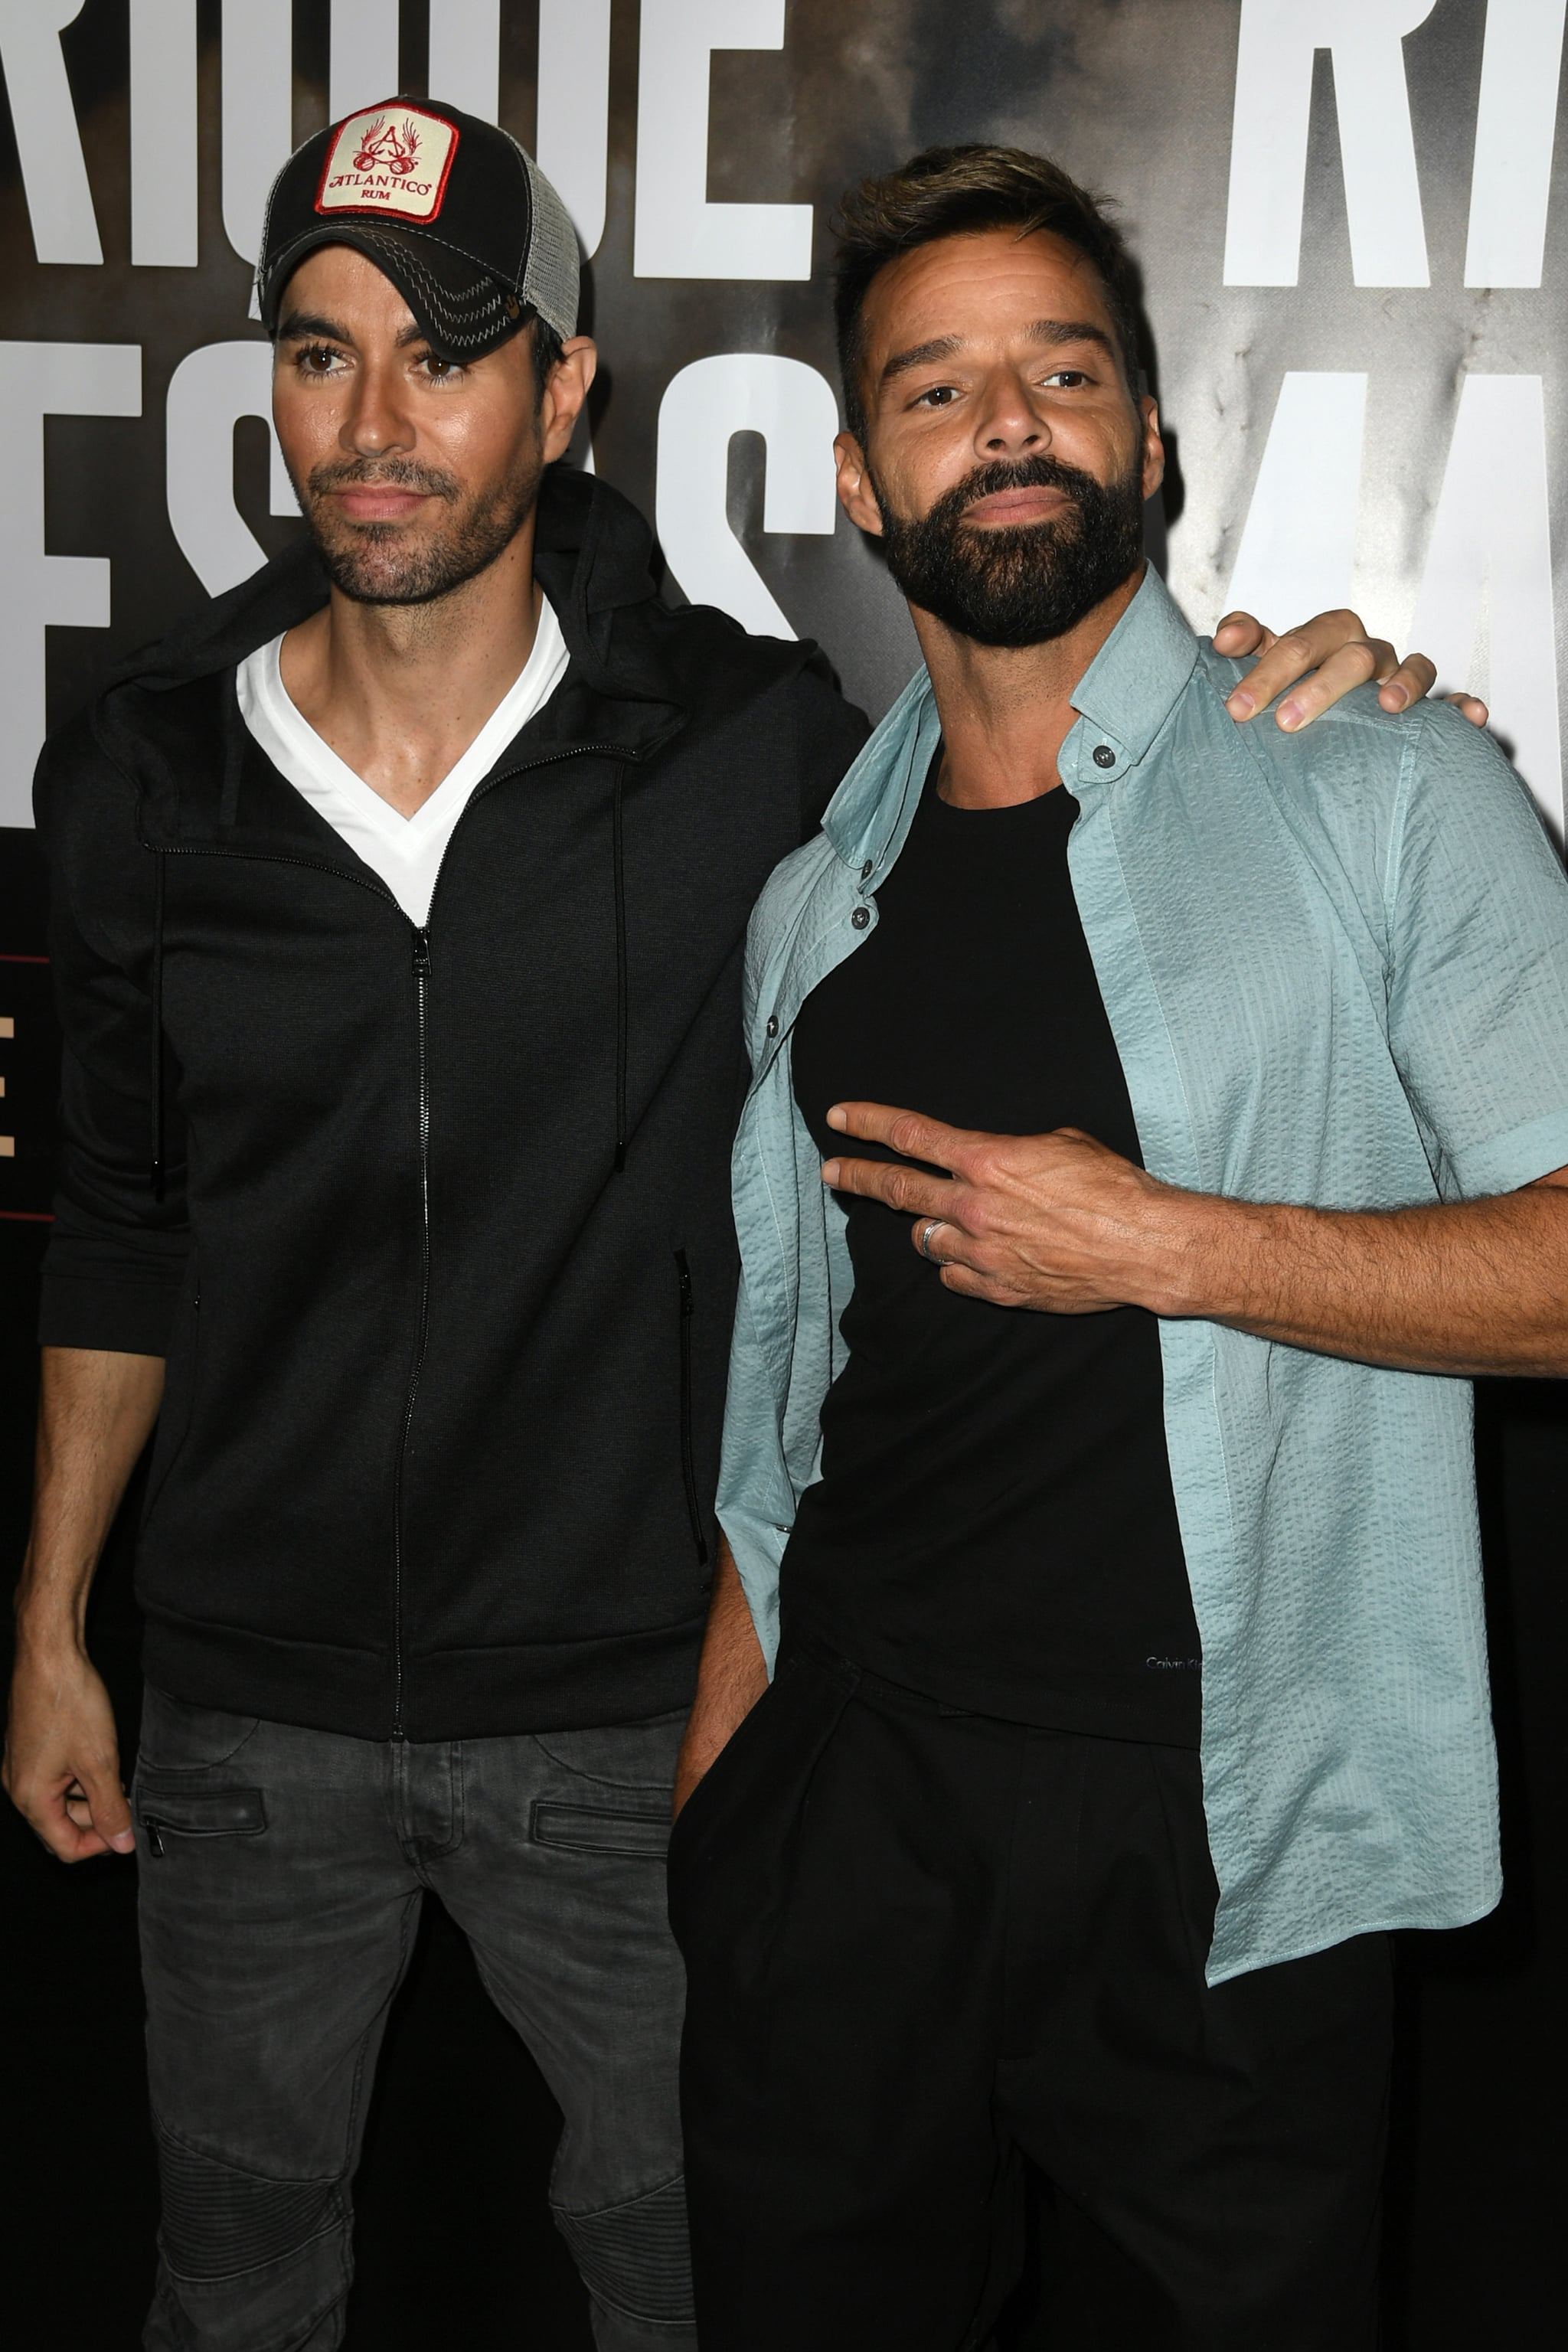 WEST HOLLYWOOD, CALIFORNIA - MARCH 04: Enrique Iglesias (L) and Ricky Martin hold a press conference at Penthouse at the London West Hollywood on March 4, 2020 in West Hollywood, California. (Photo by Kevin Winter/Getty Images)